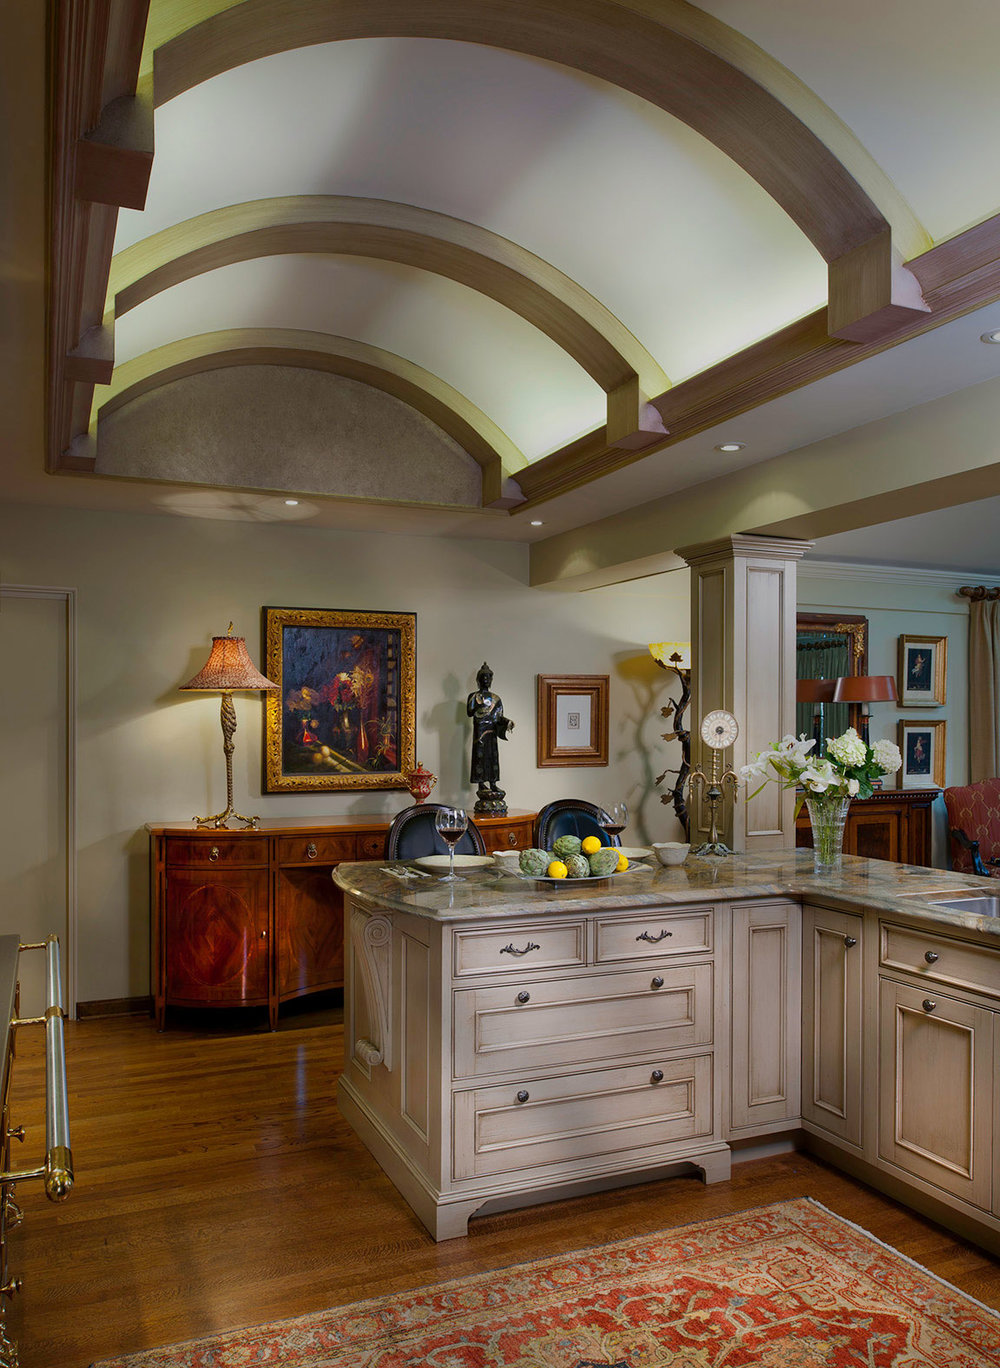 kitchen_bath_Concepts_pittsburgh_traditional_home5_15.jpg